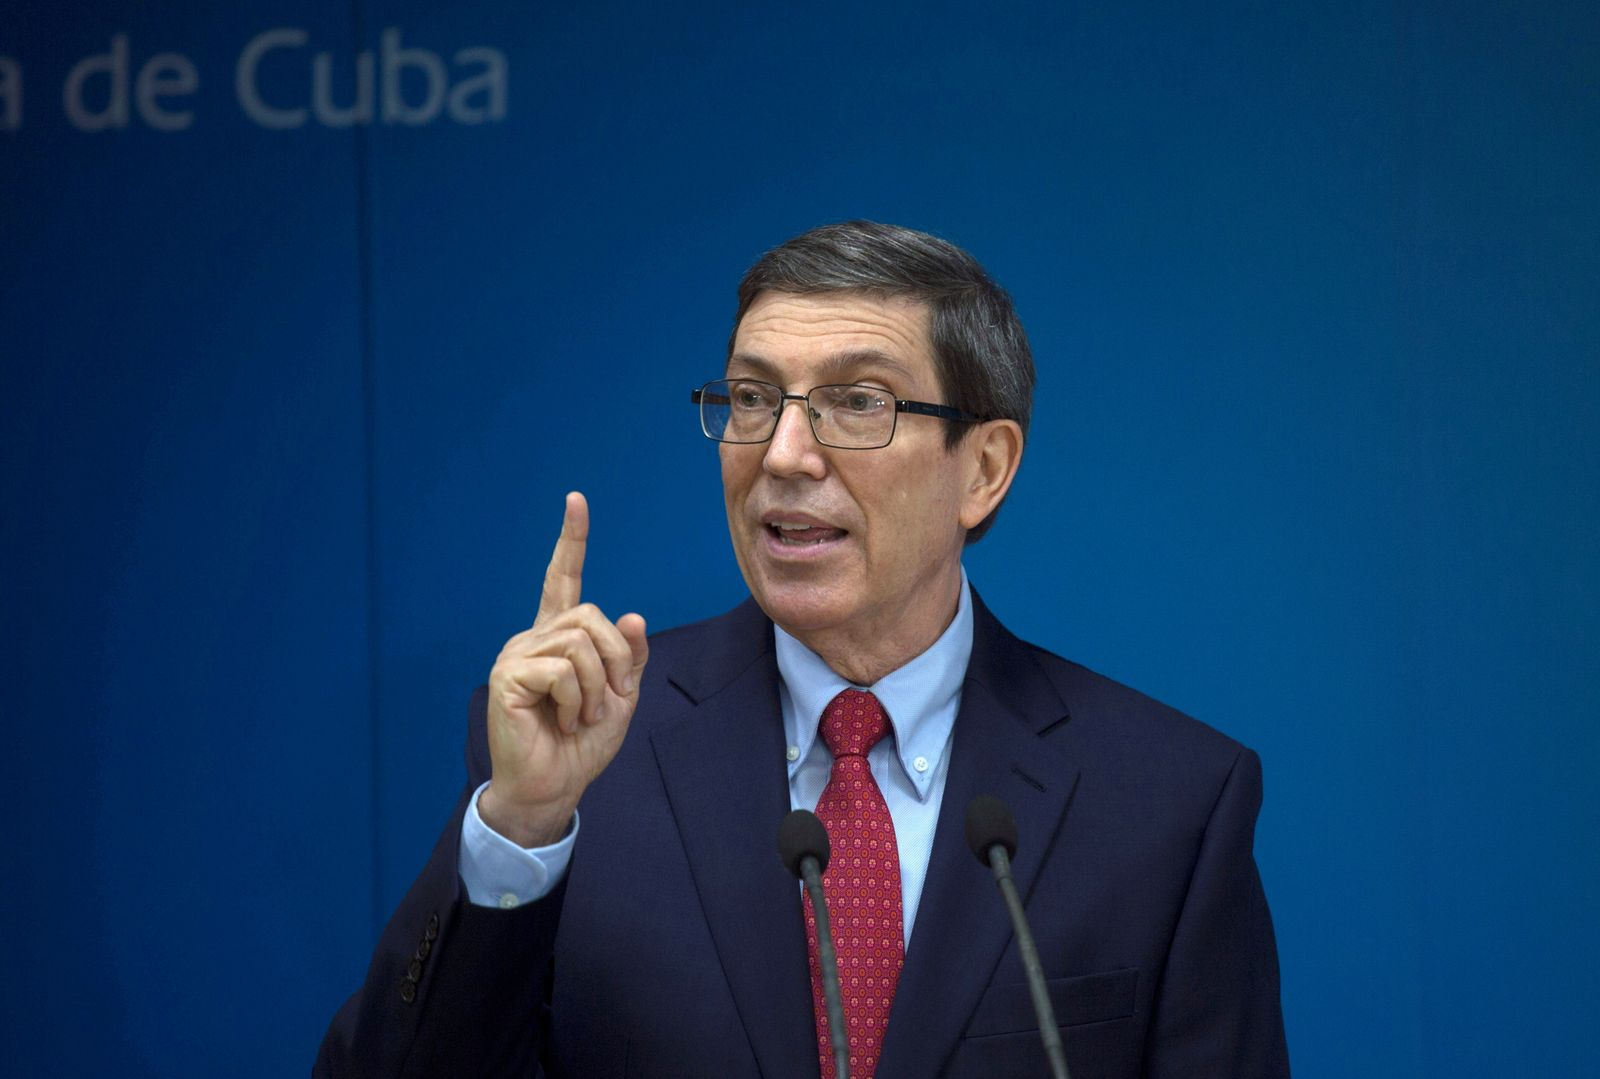 Cuba's Foreign Minister Bruno Rodriguez Parilla speaks during a news conference in Havana